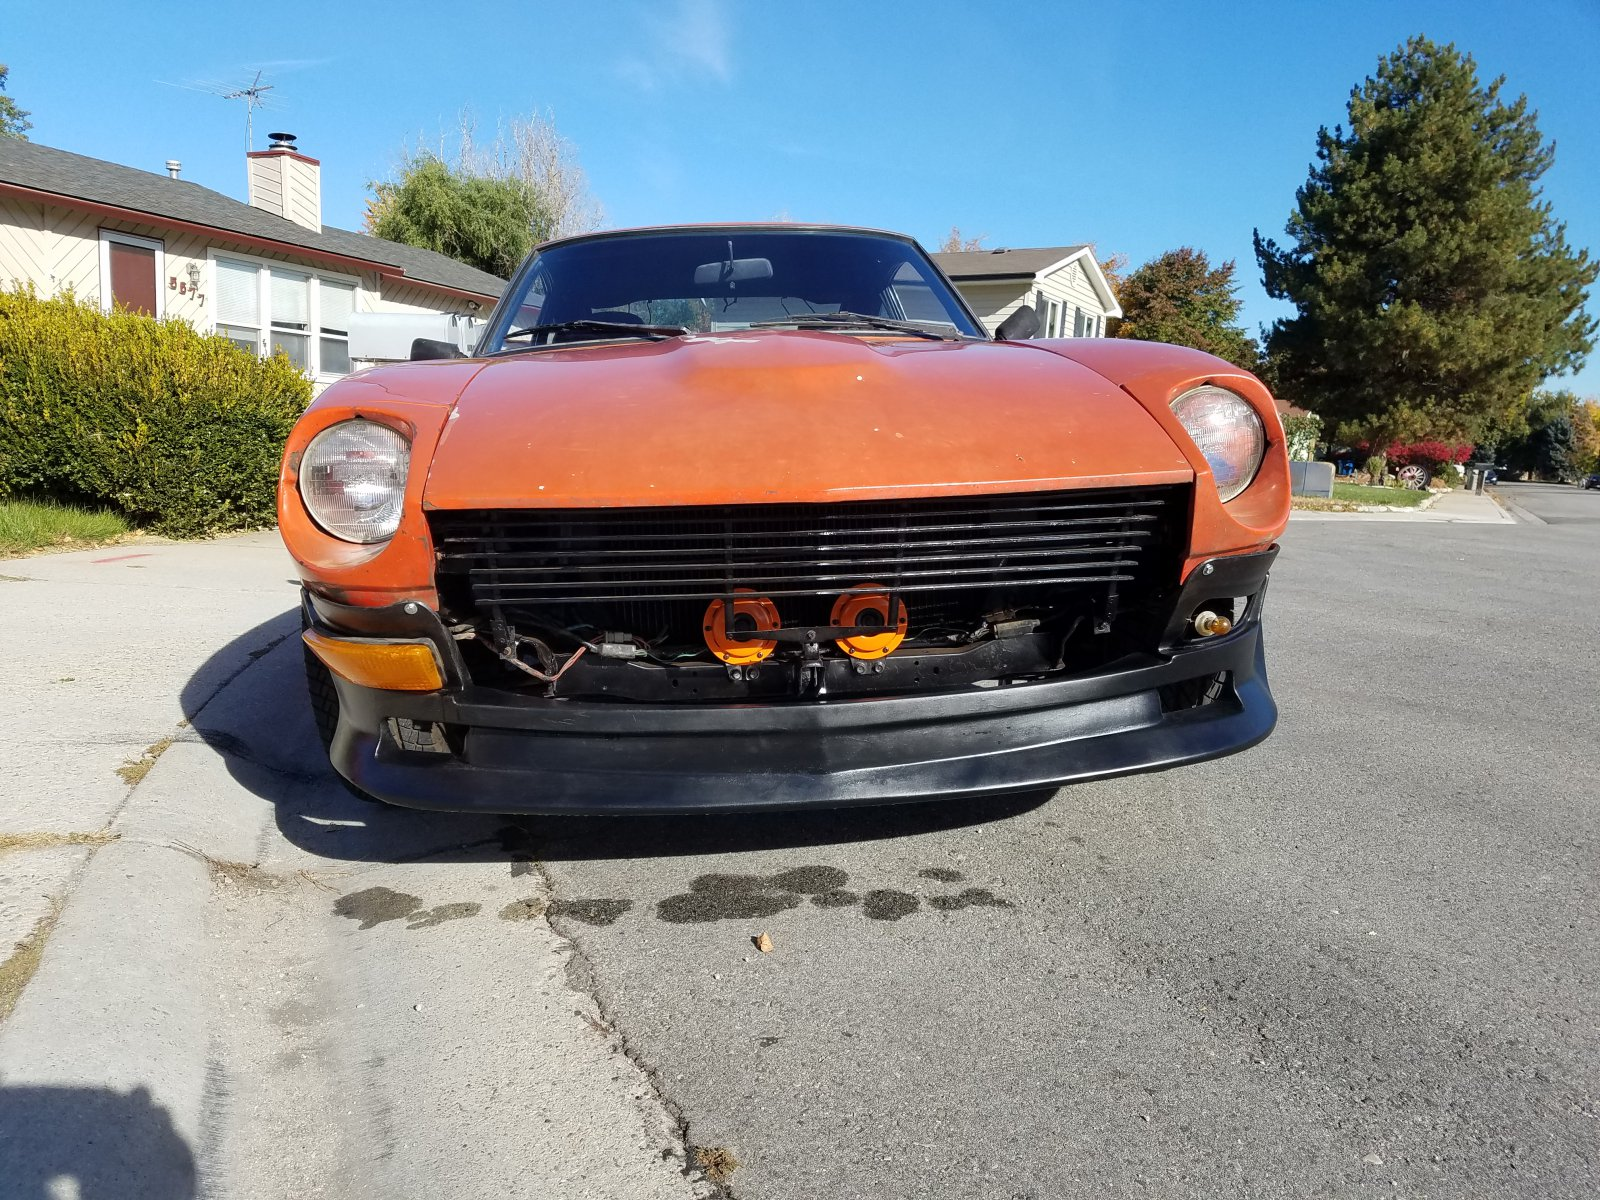 My 240z after some paint